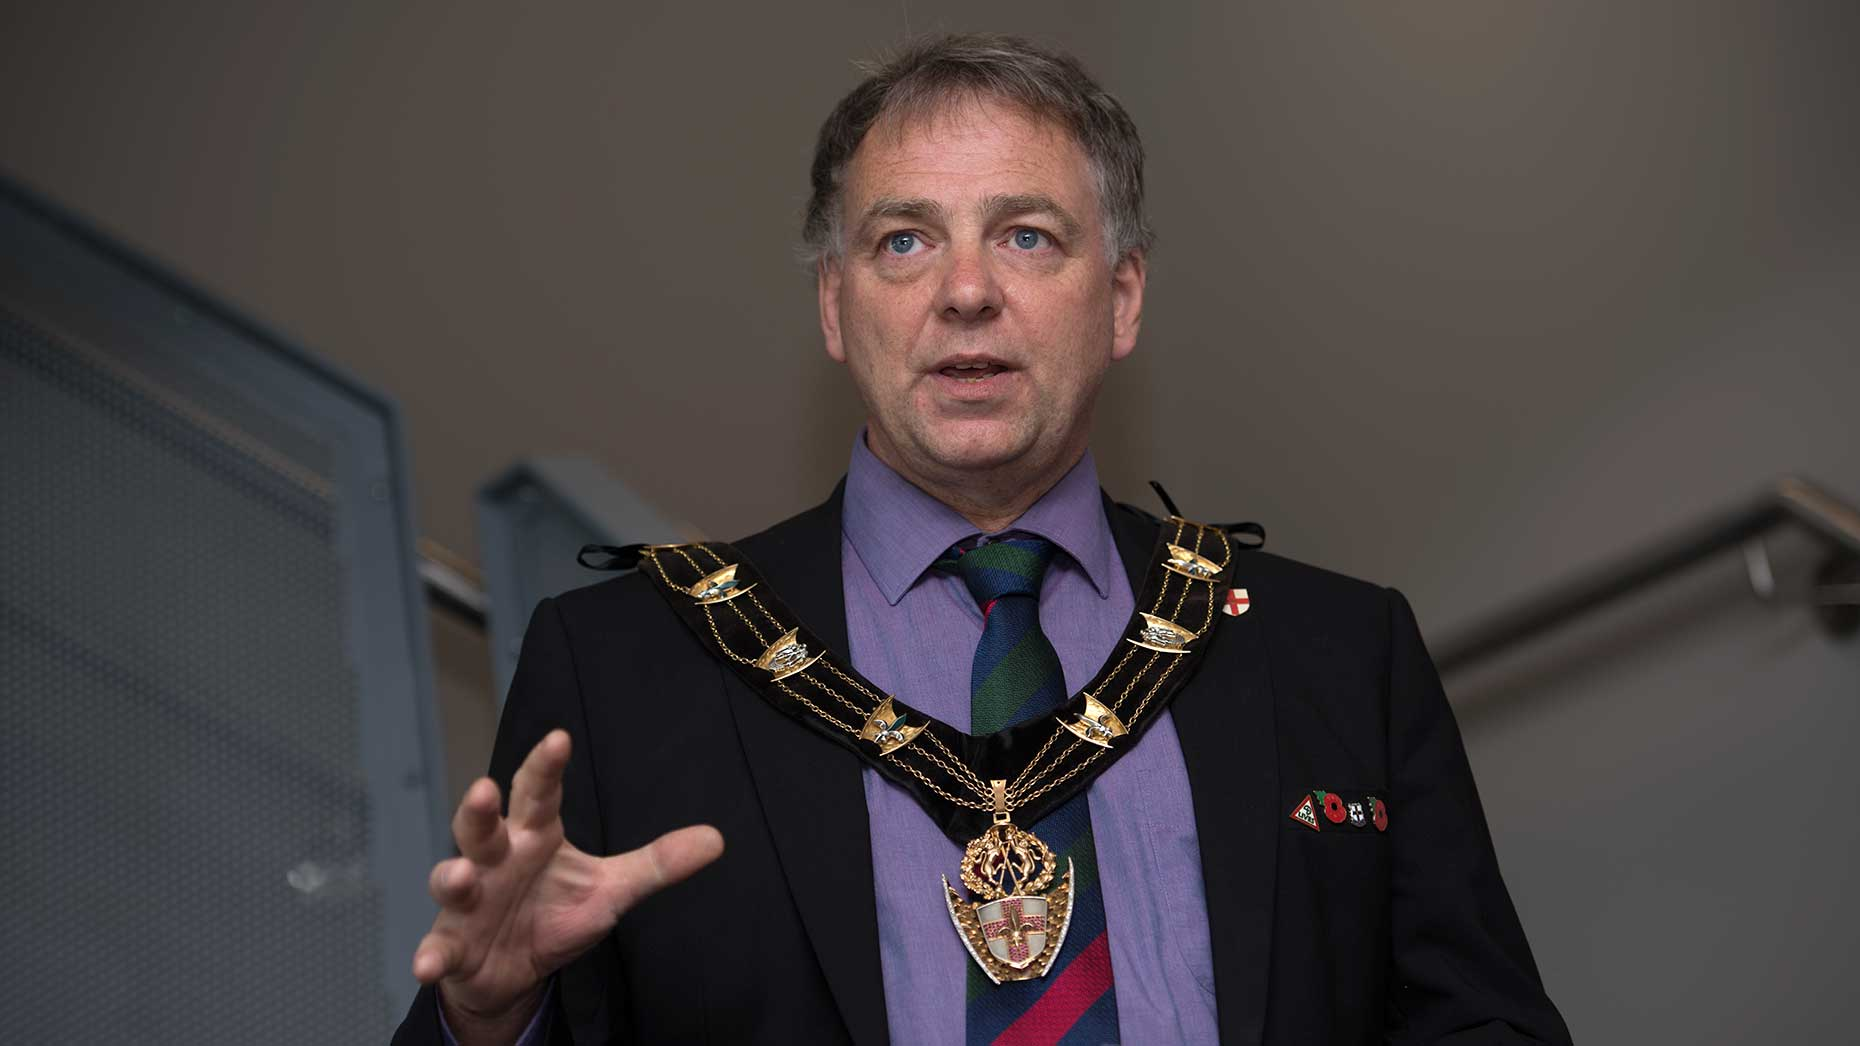 Mayor of Lincoln Councillor Andrew Kerry. Photo: Steve Smailes for The Lincolnite